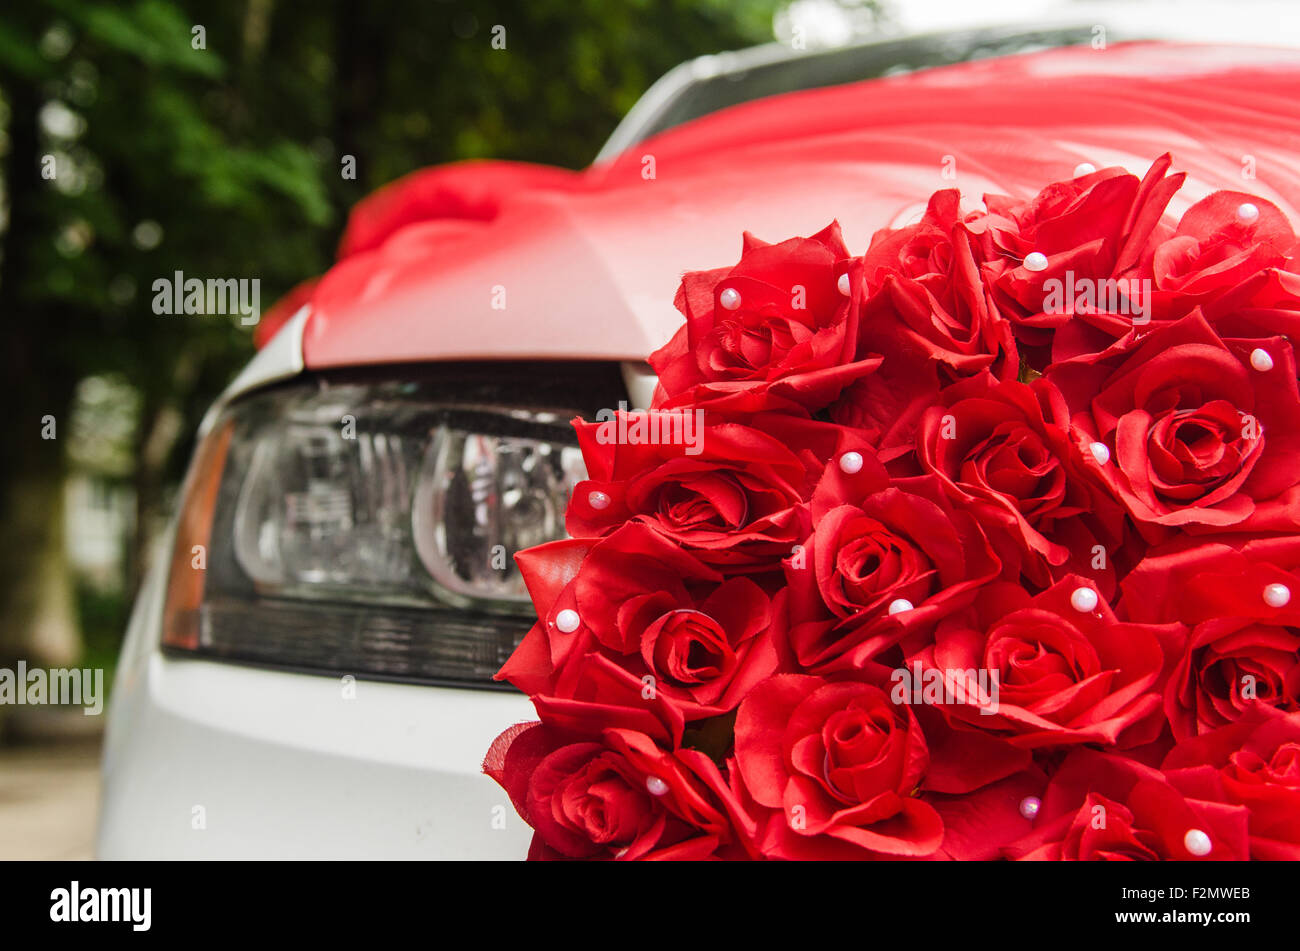 Design of bridal car - Wedding Car Decorated With Red Roses